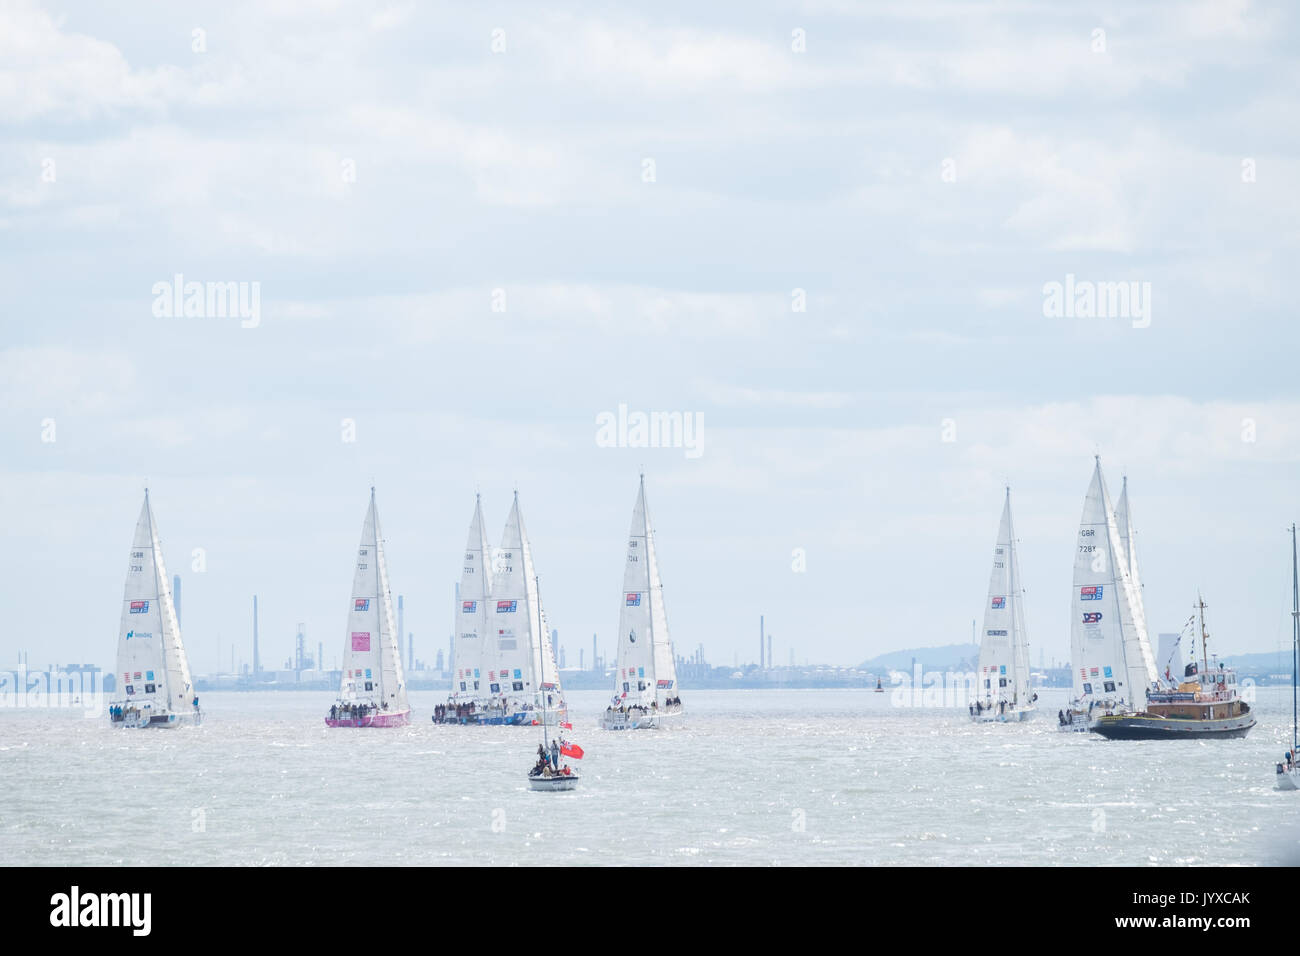 Liverpool, UK. 20th Aug, 2017. The Clipper Round the World Yacht Race began on the River Mersey in Liverpool on Sunday, August 20, 2017. The race involves 12 teams, sailing eight legs and a record breaking 40,000 nautical miles. The race will come to an end back in Liverpool in 2018. Credit: Christopher Middleton/Alamy Live News - Stock Image